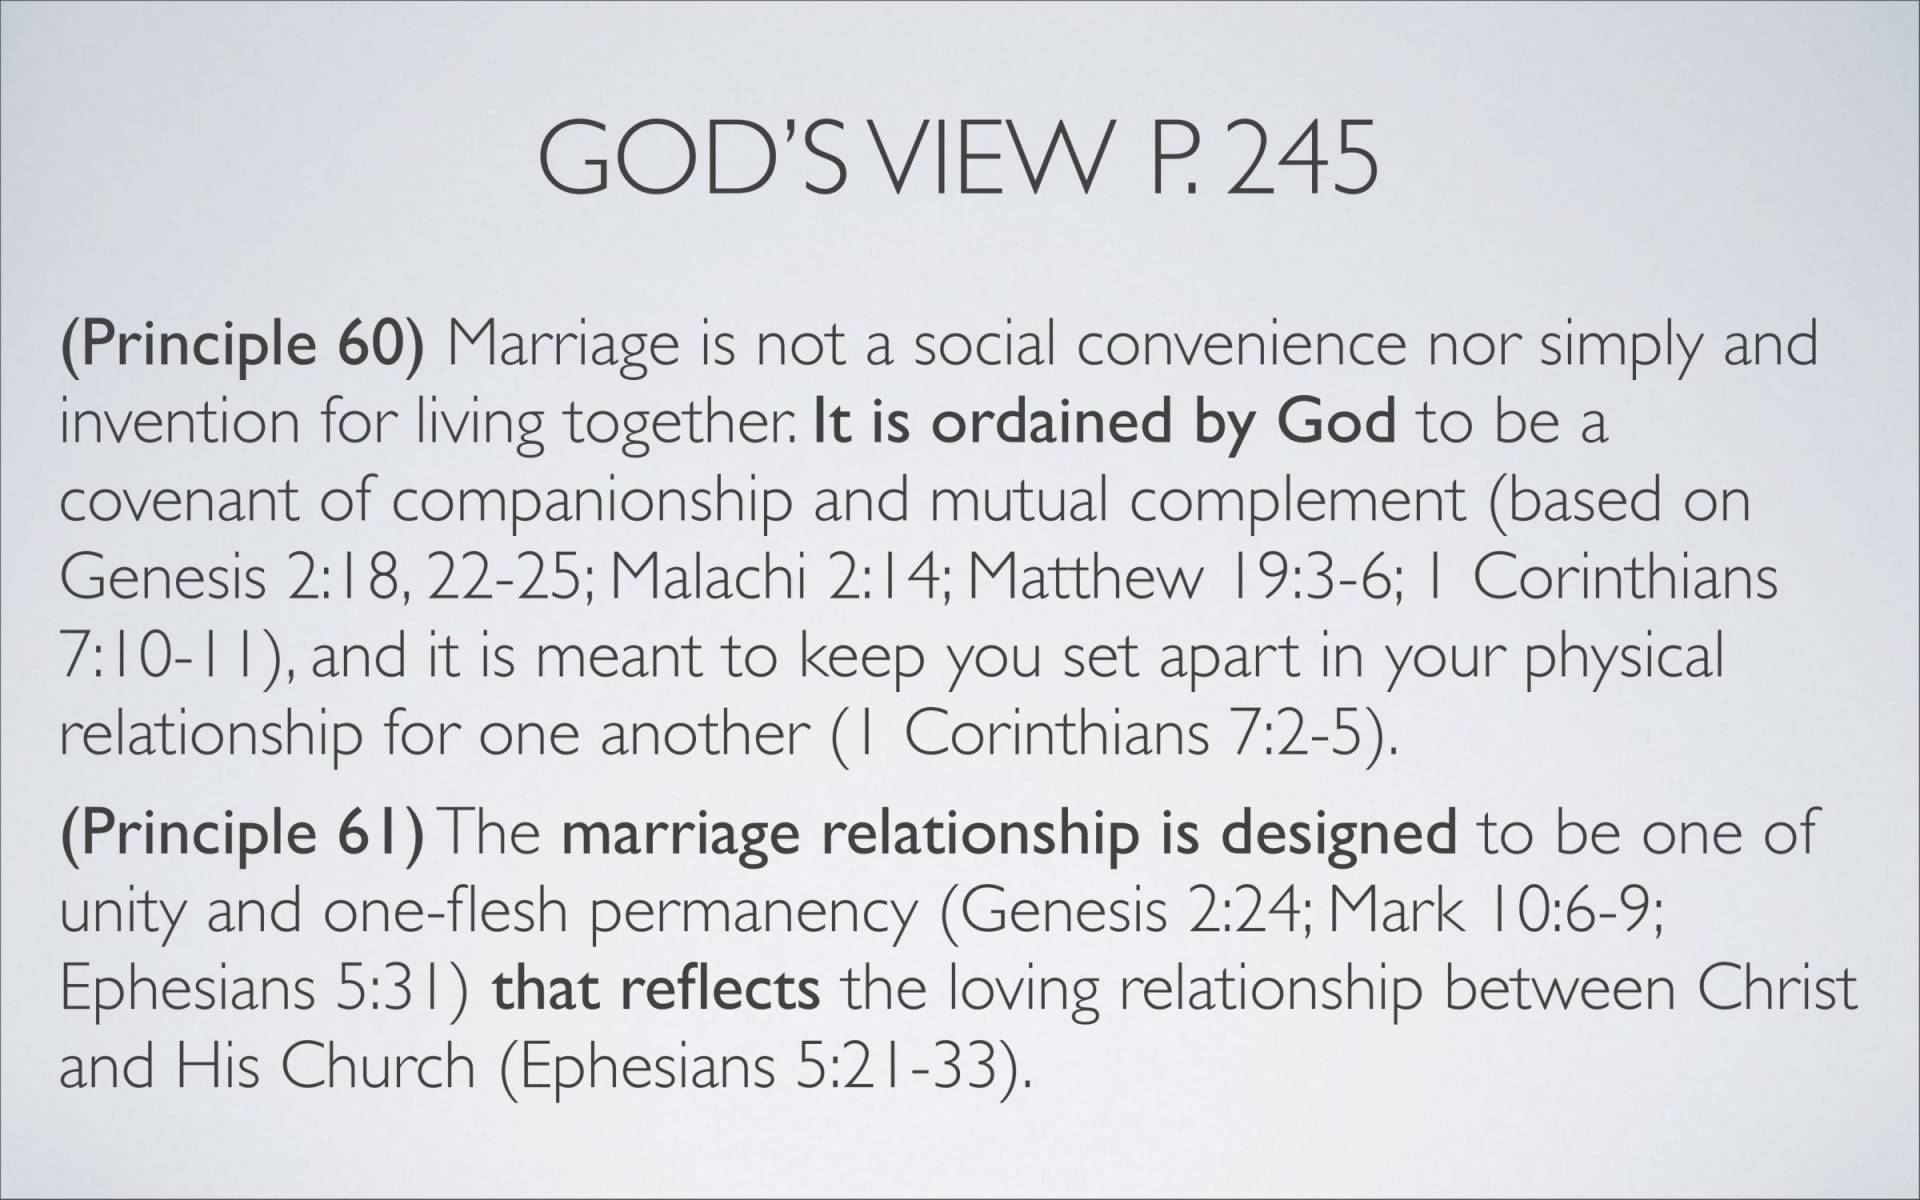 BC&D-36 - Lesson 14 - The Marriage Relationship-05